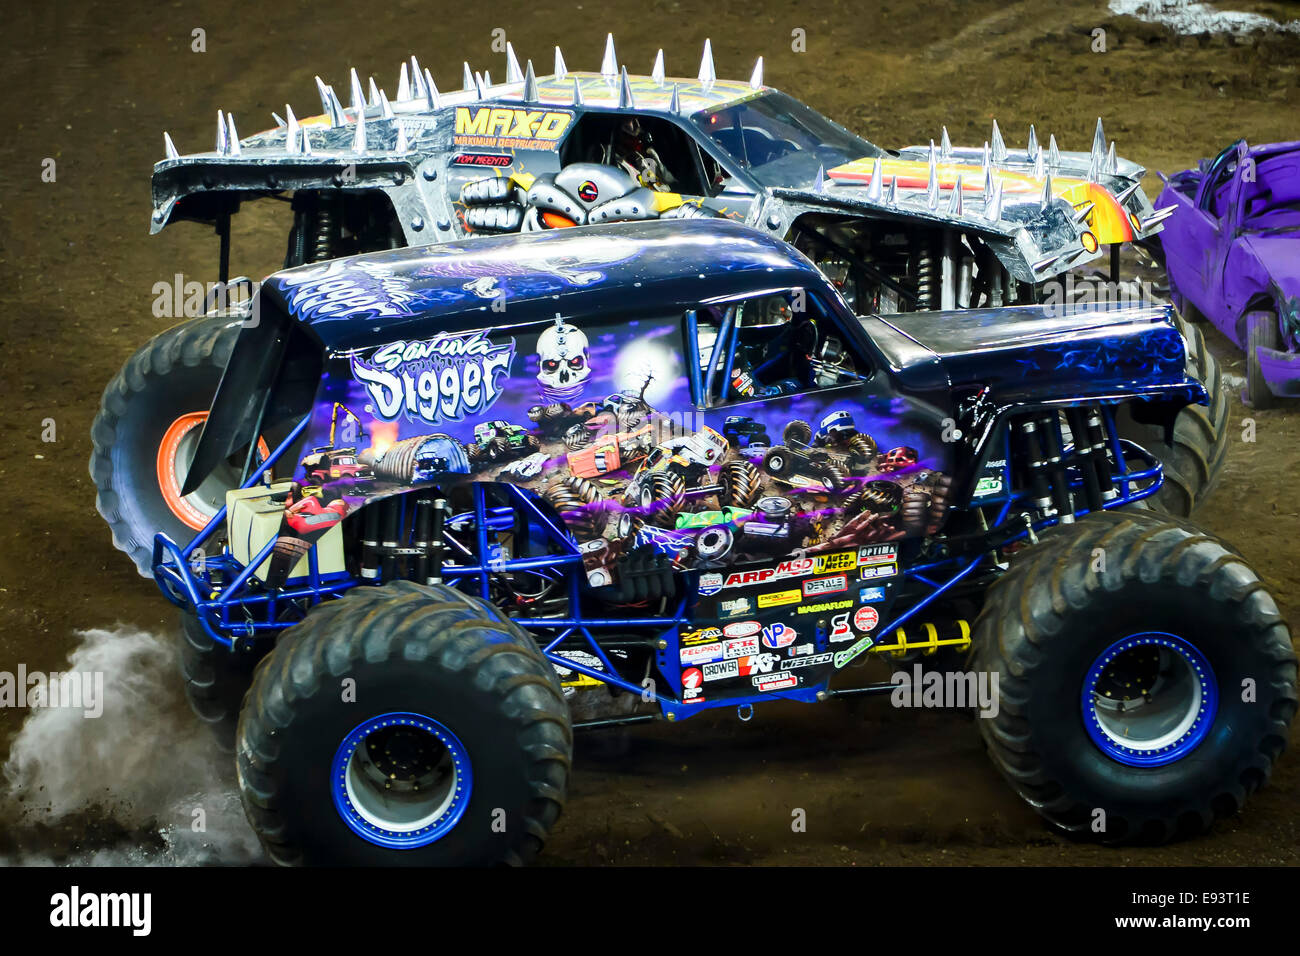 Sydney Australia 18th Oct 2014 Grave Digger And Max D Fight Stock Photo Alamy